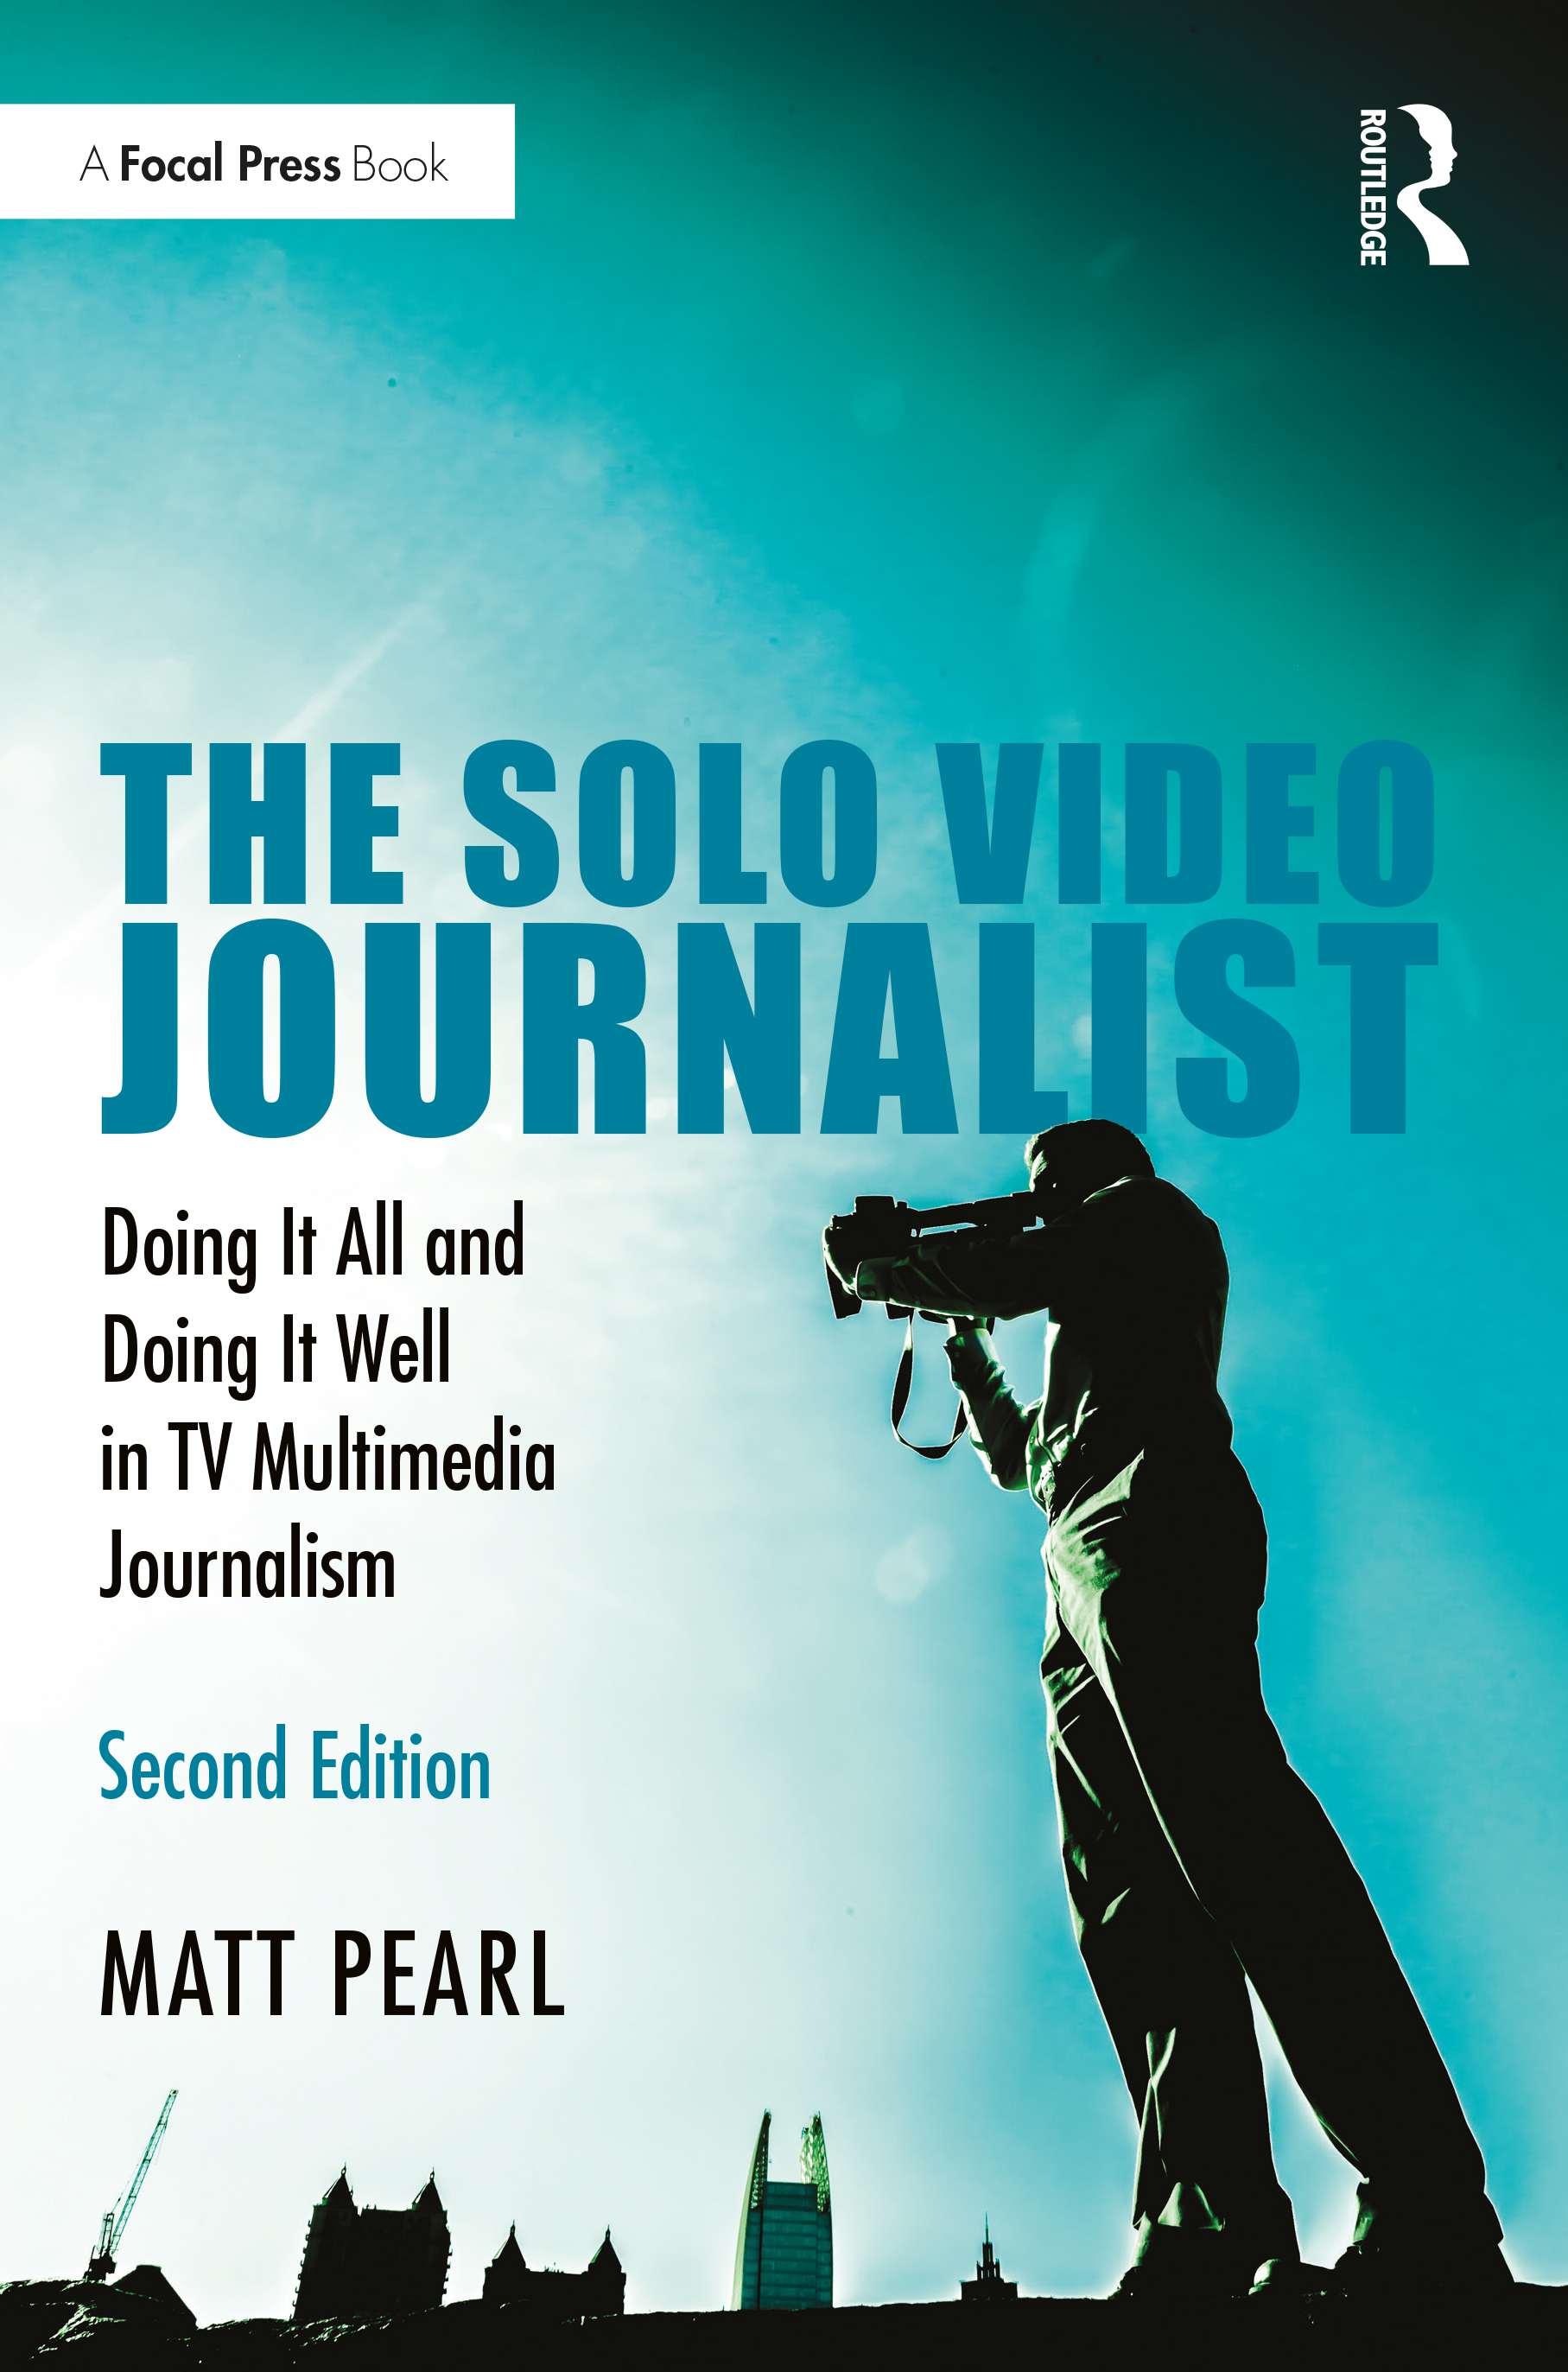 The Solo Video Journalist: Doing It All and Doing It Well in TV Multimedia Journalism book cover